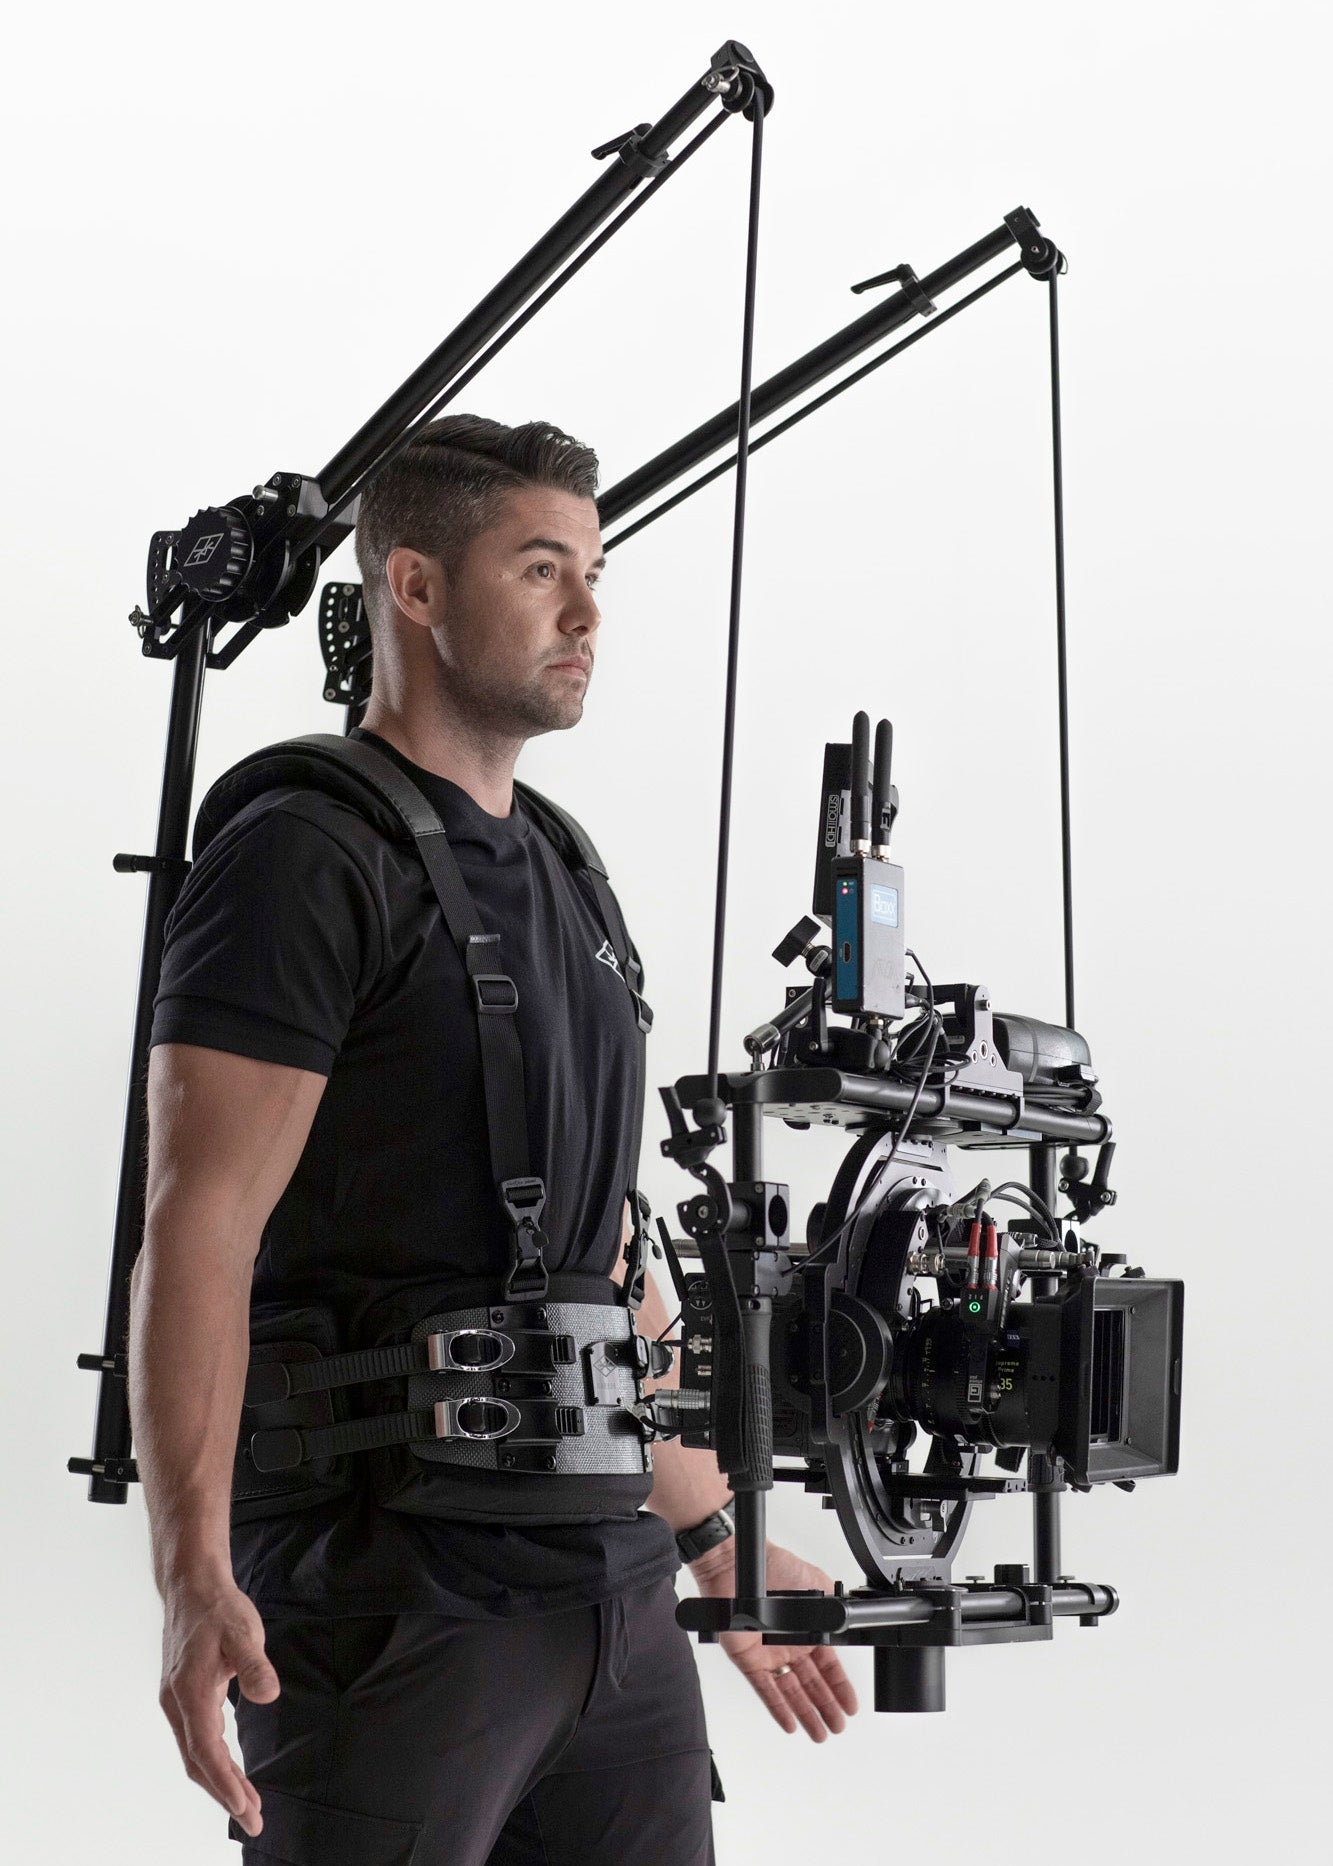 SlingShot Rig 2.0 with Harness Kit